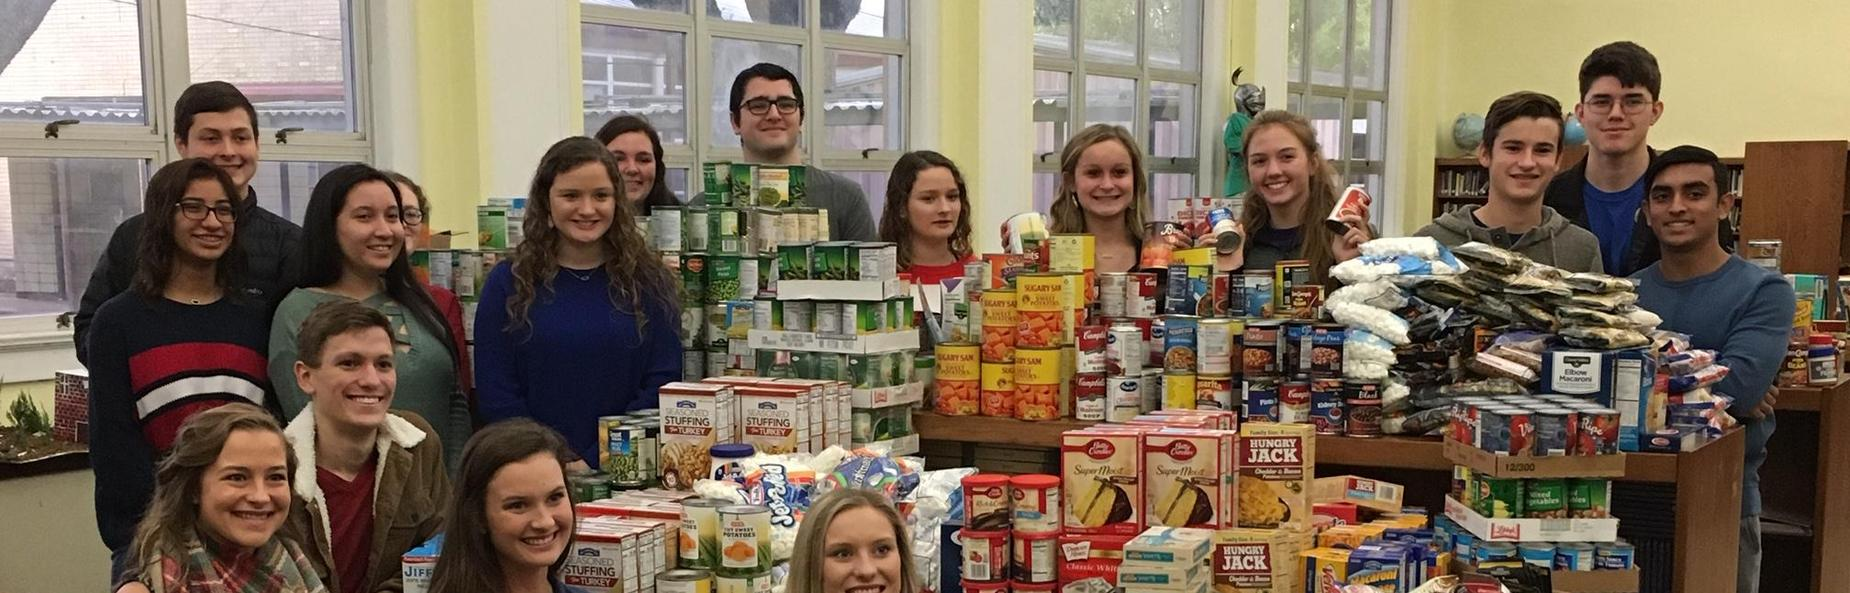 students with food for food drive